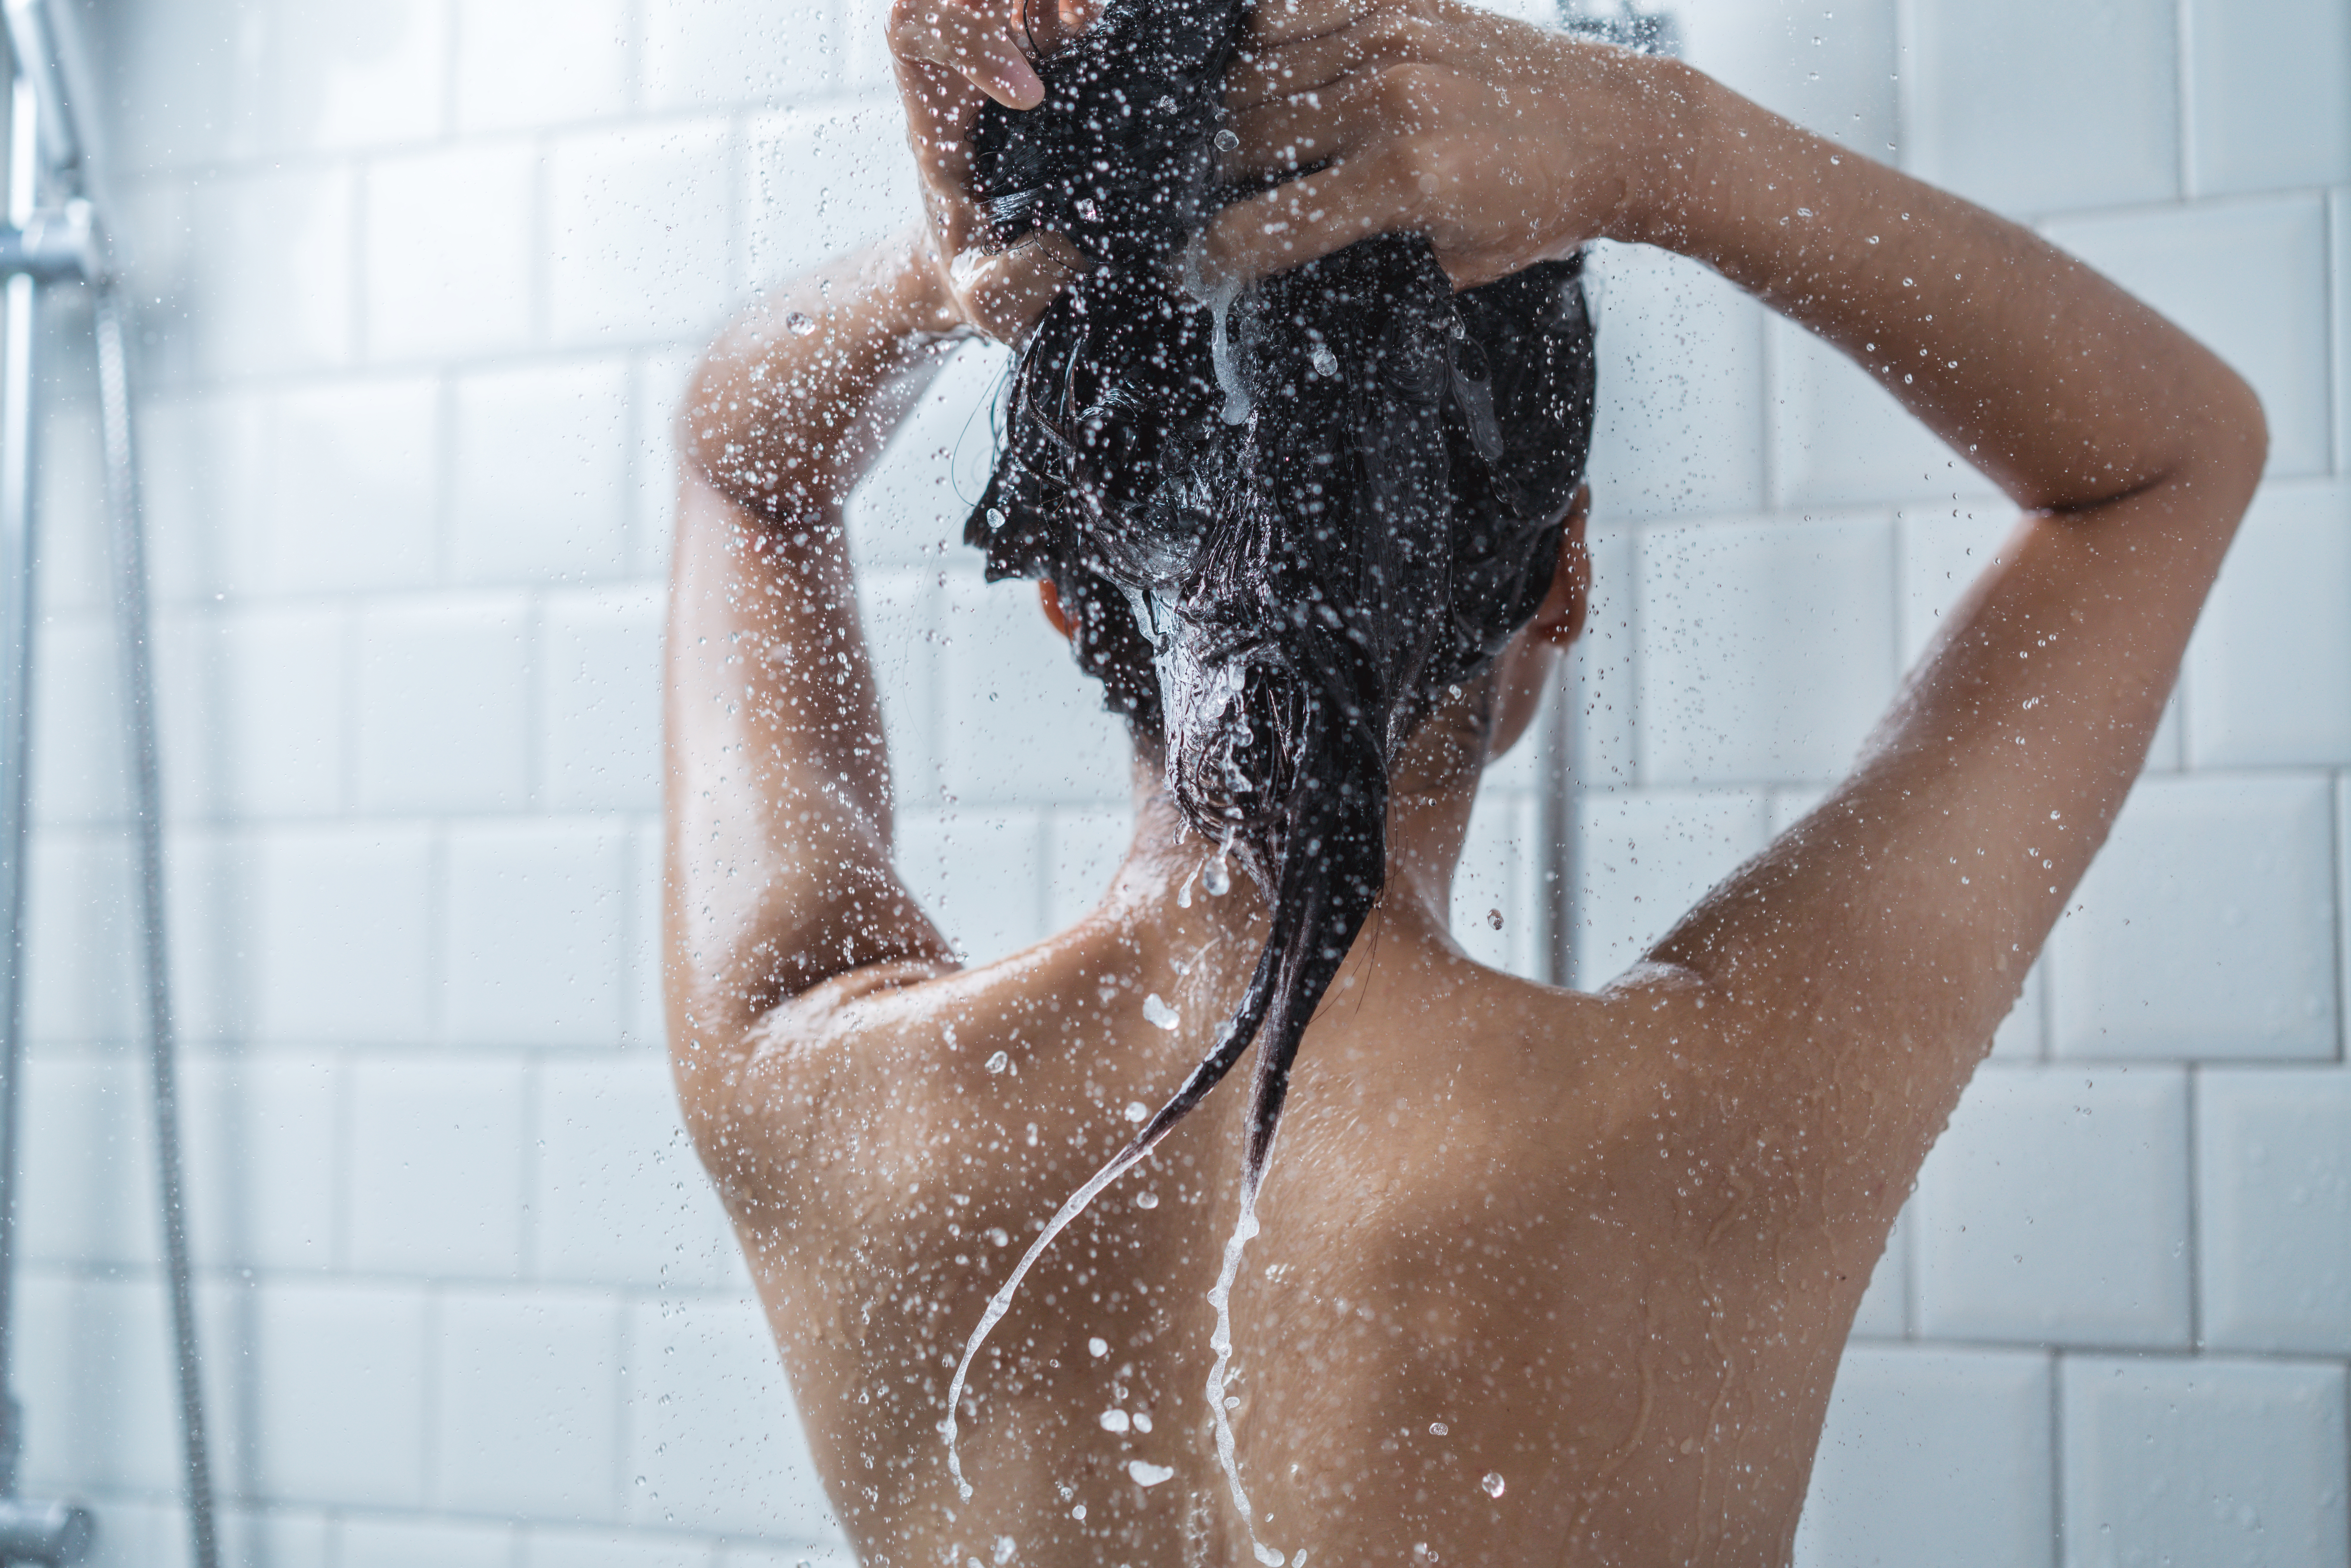 Plumbing Problems: Shower Water Not Getting Hot | Home